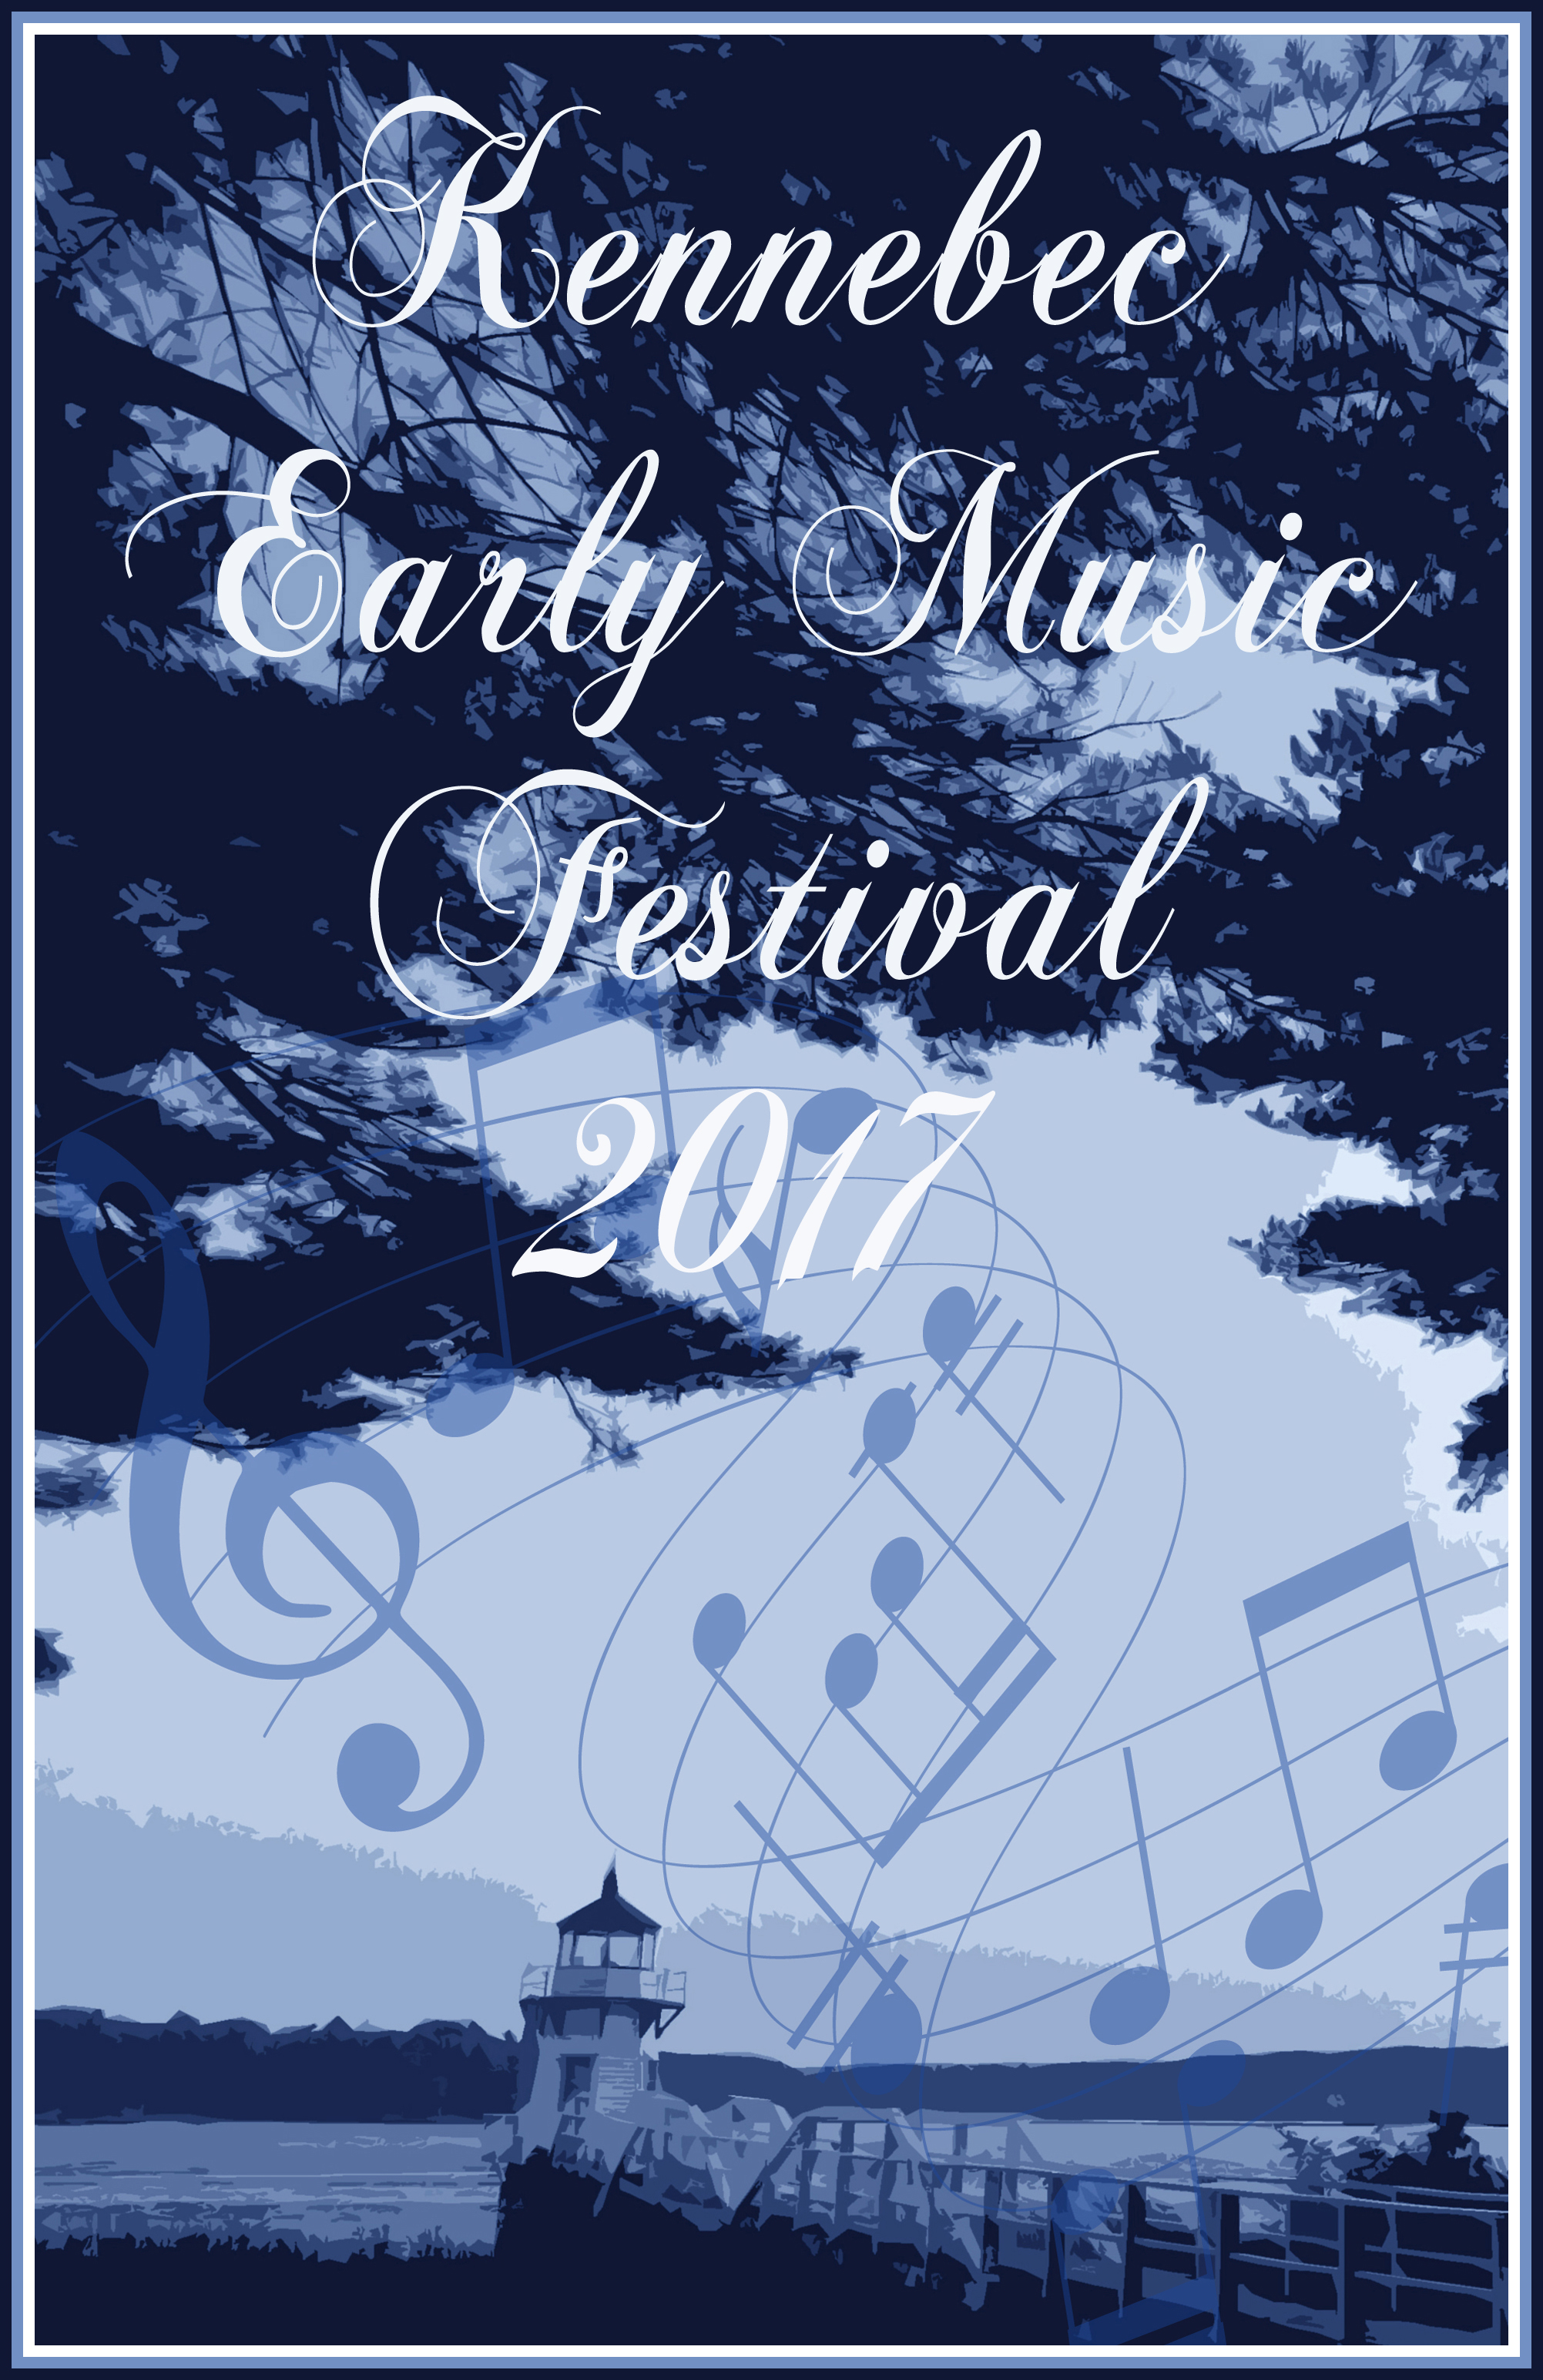 Kennebec Early Music Festival